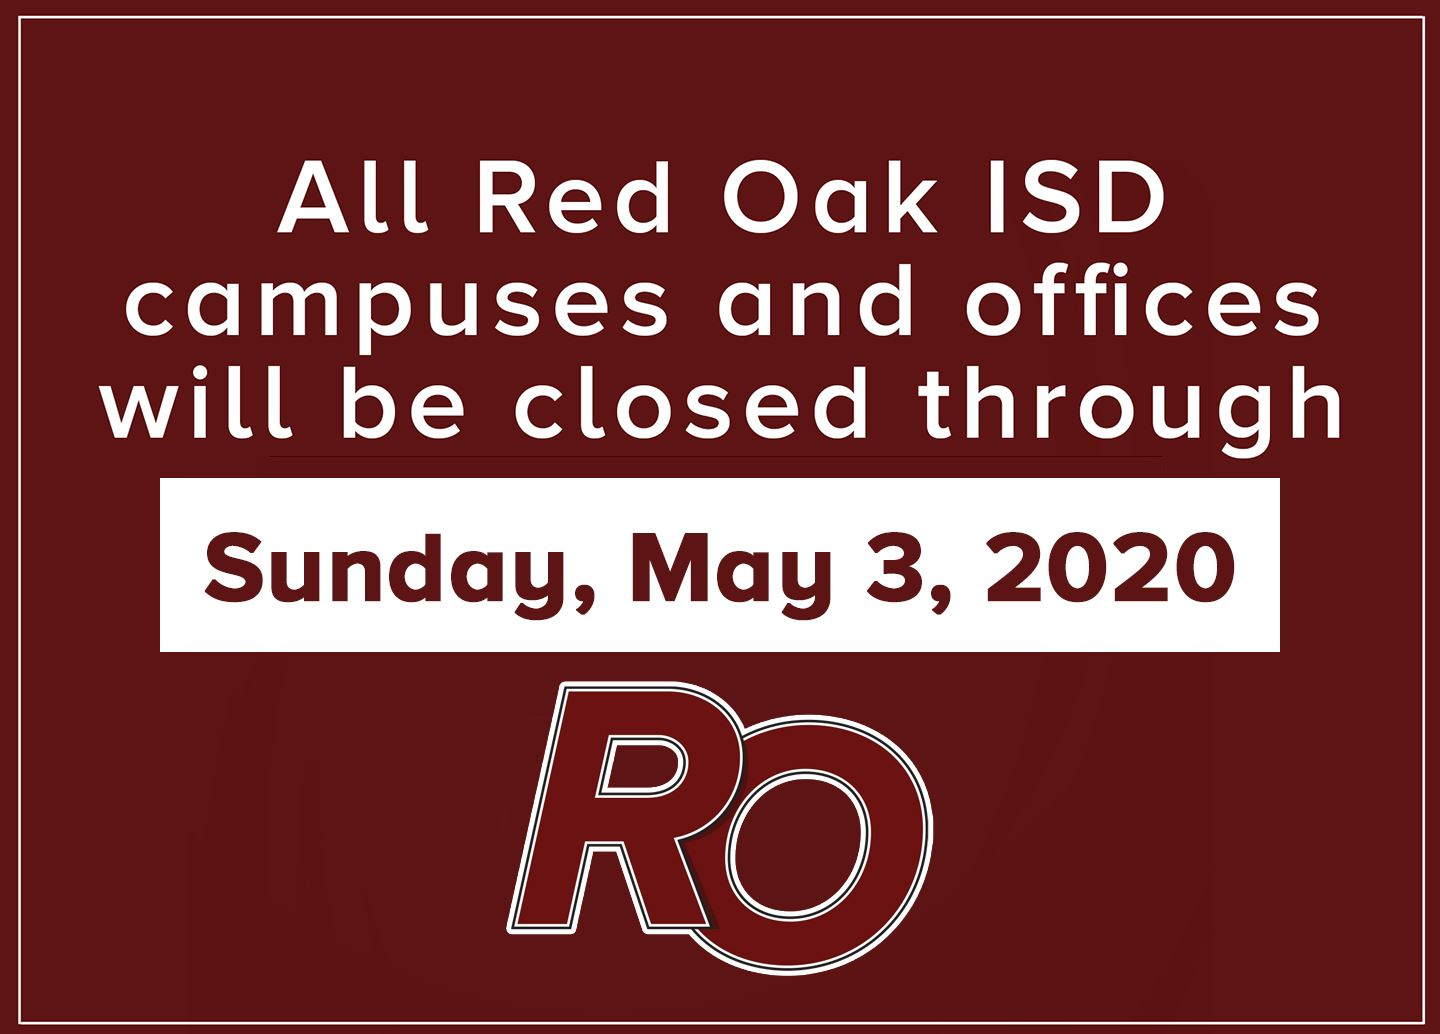 All ROISD campuses and offices will be closed until Sunday, May 3, 2020